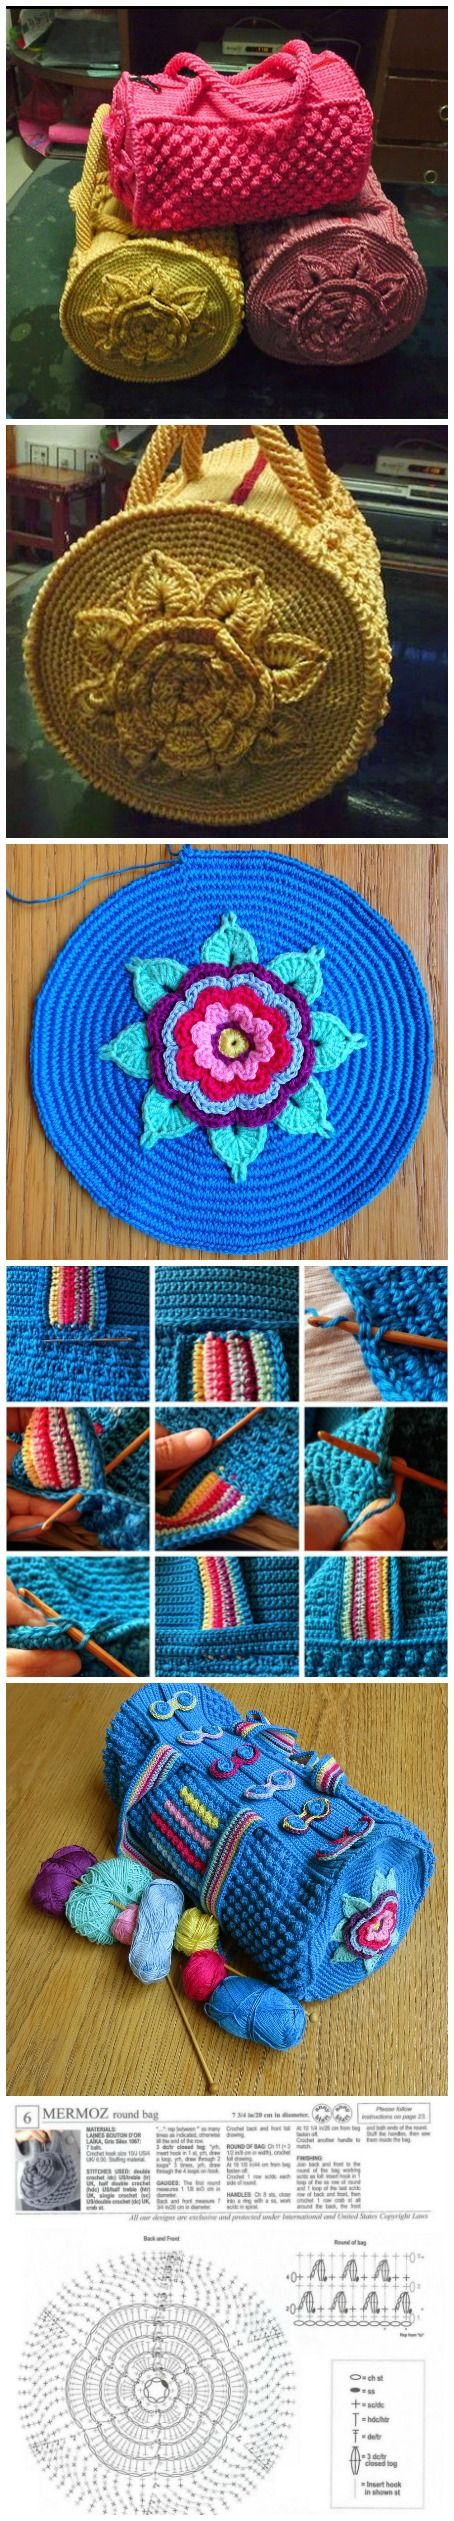 Crochet Beautiful Handbag